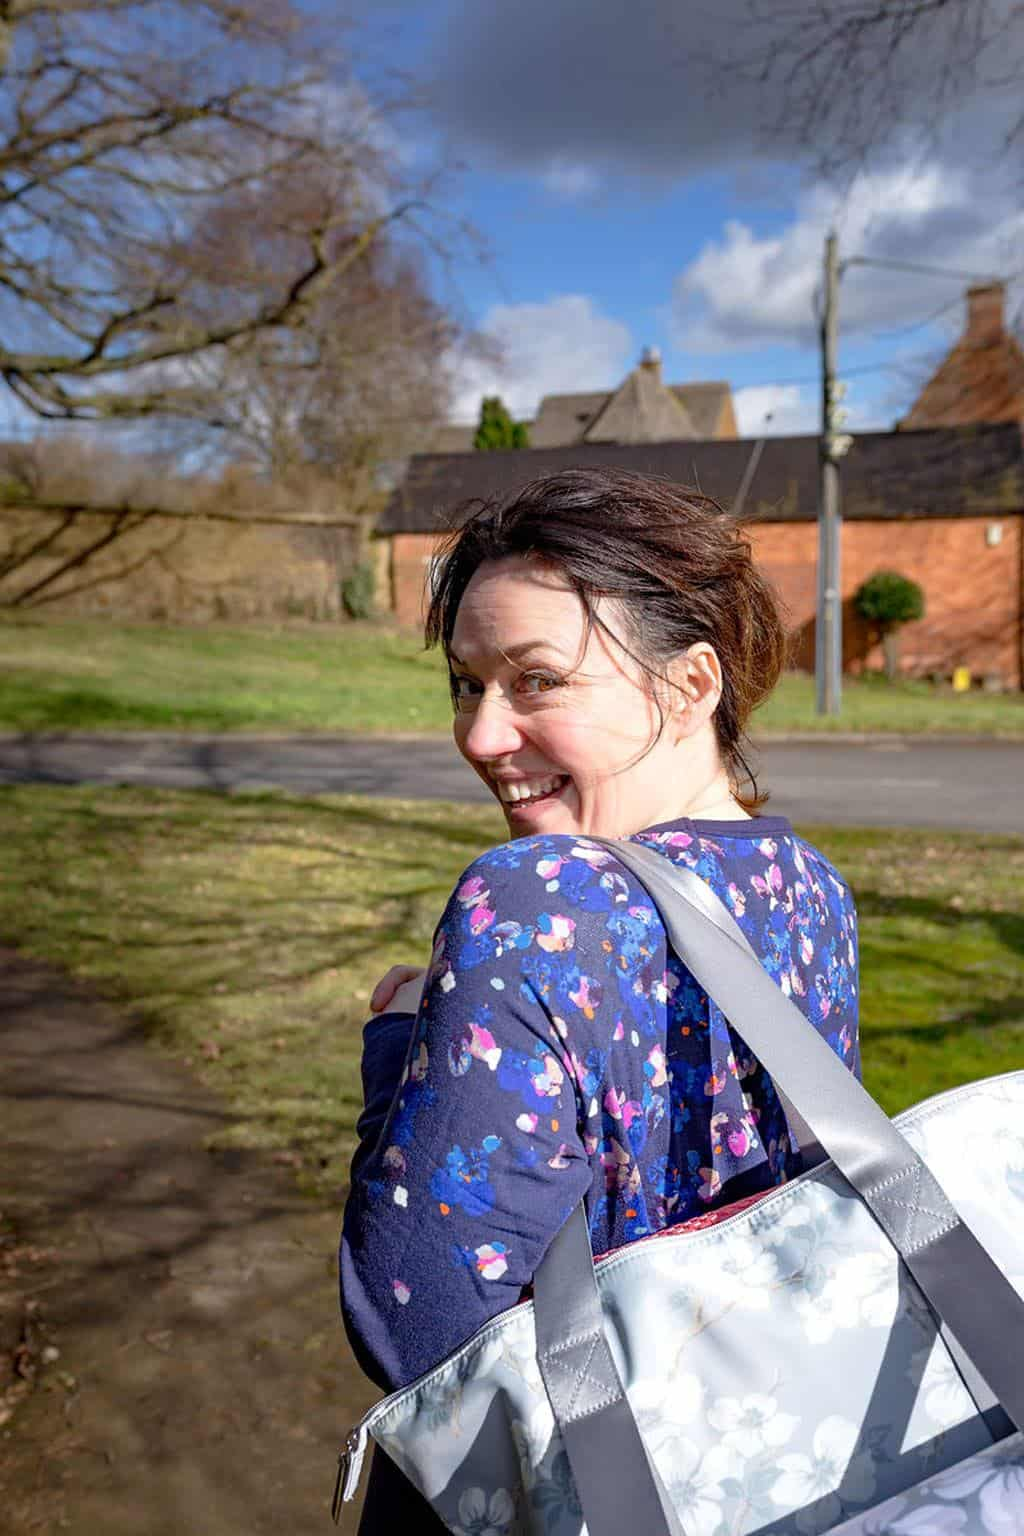 Walking to Pilates in Joules activewear with Laura Ashley gym bag